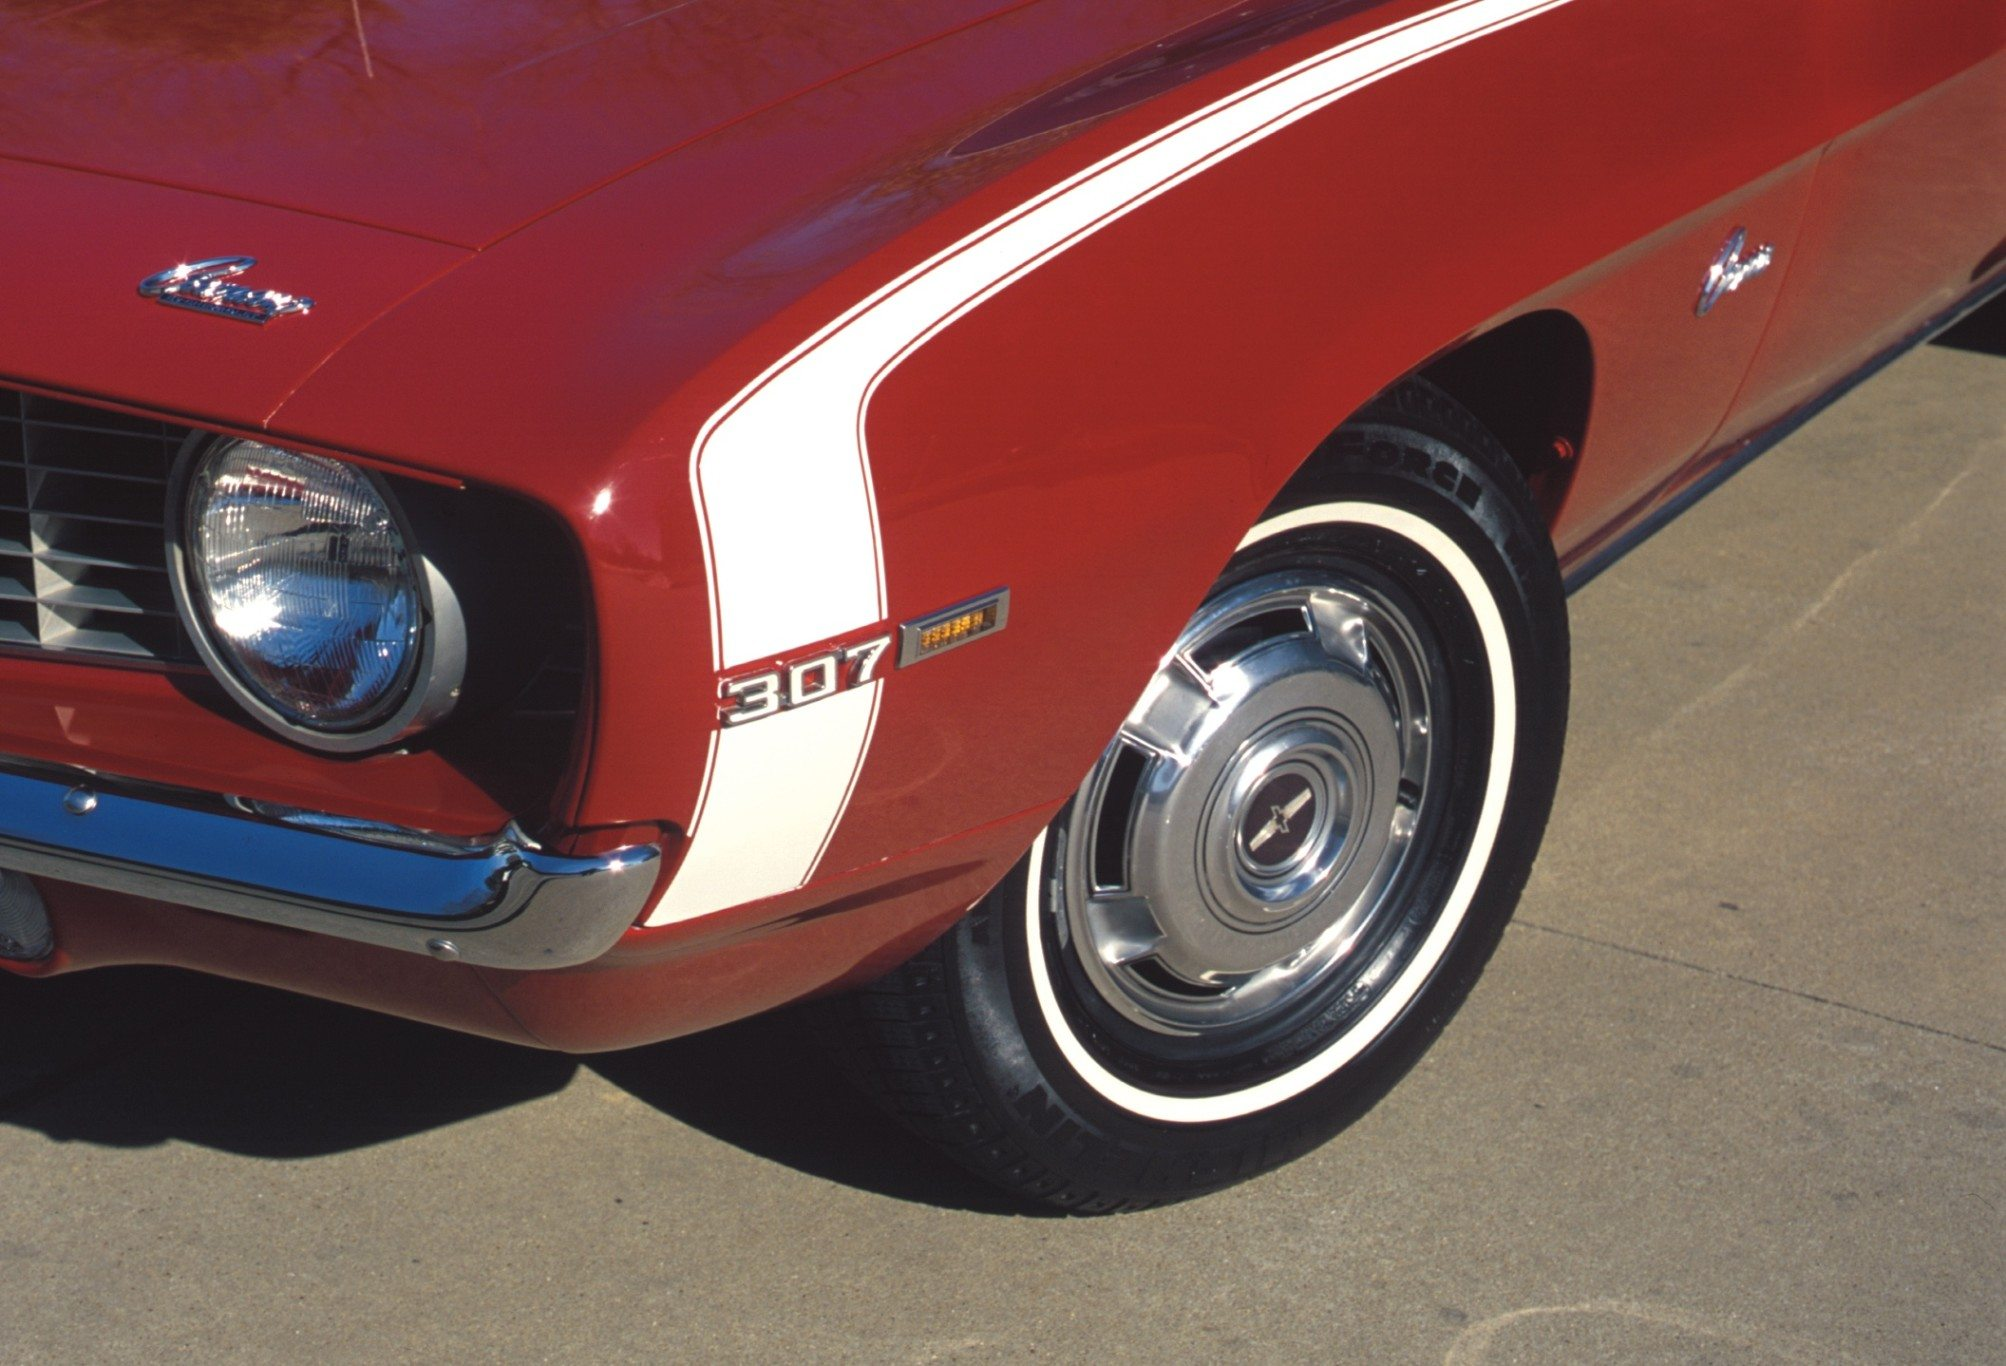 1969 Chevy Camaro 307 Front Fender and Wheel